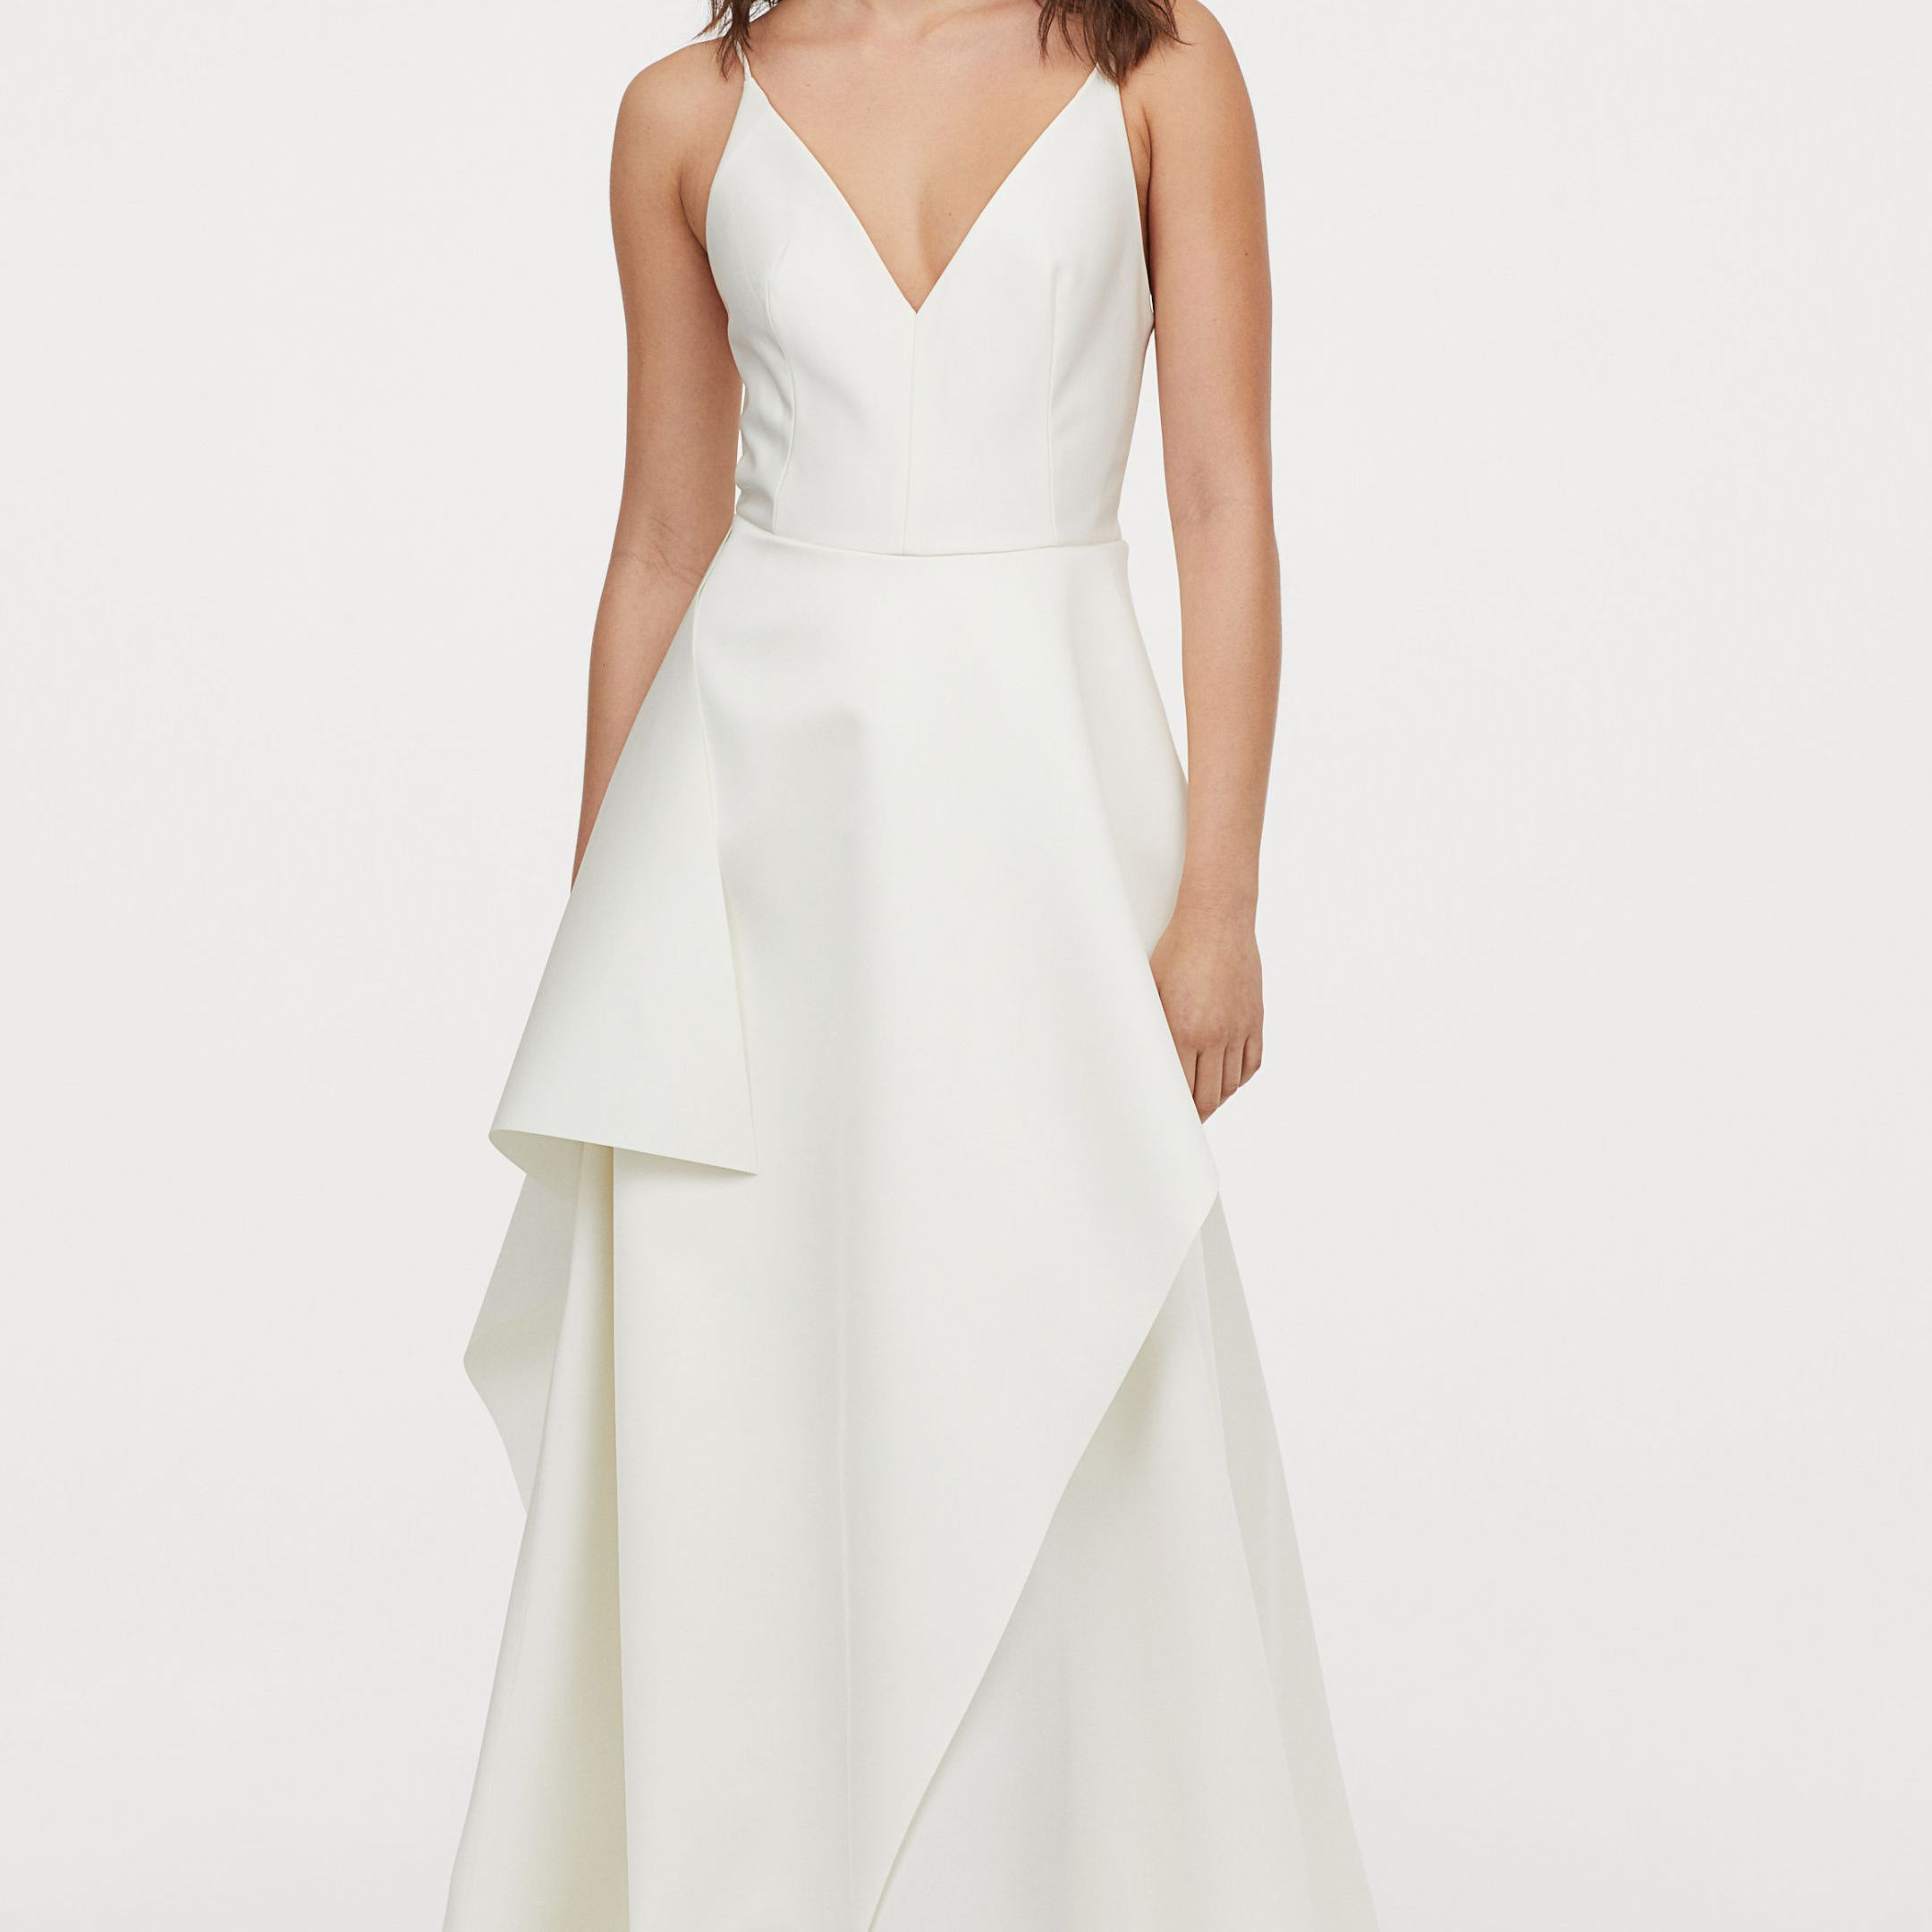 Hm Wedding Dress.H M Is Back With A New Spring Bridal Collection